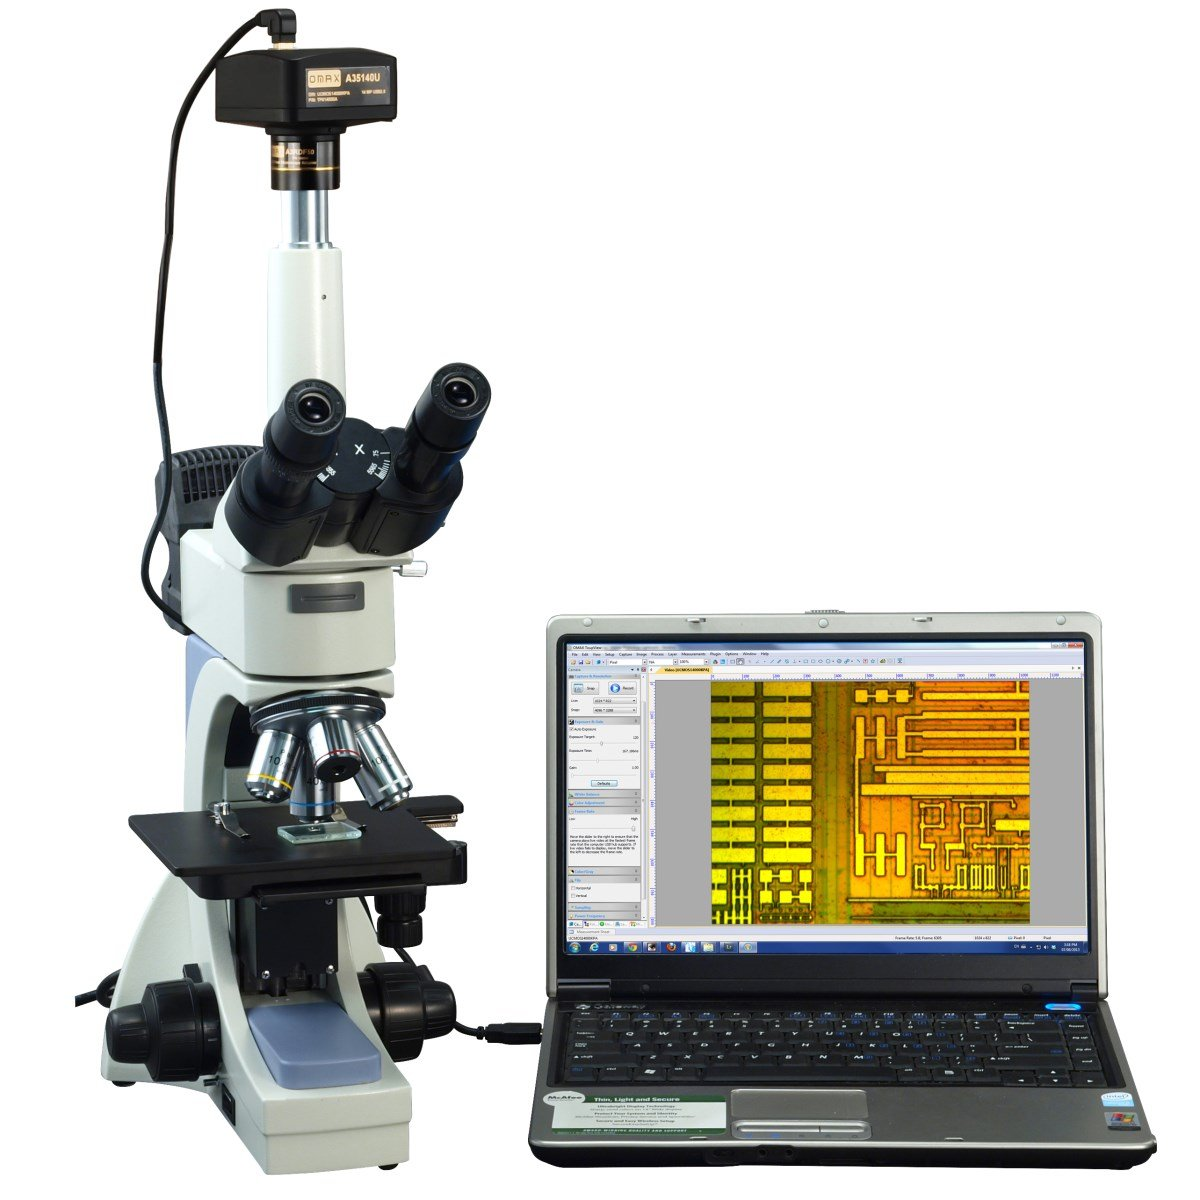 OMAX 40X-2500X Digital Infinity Trinocular Polarizing Metallurgical Microscope with 14MP Camera and 100X Dry Objective by OMAX